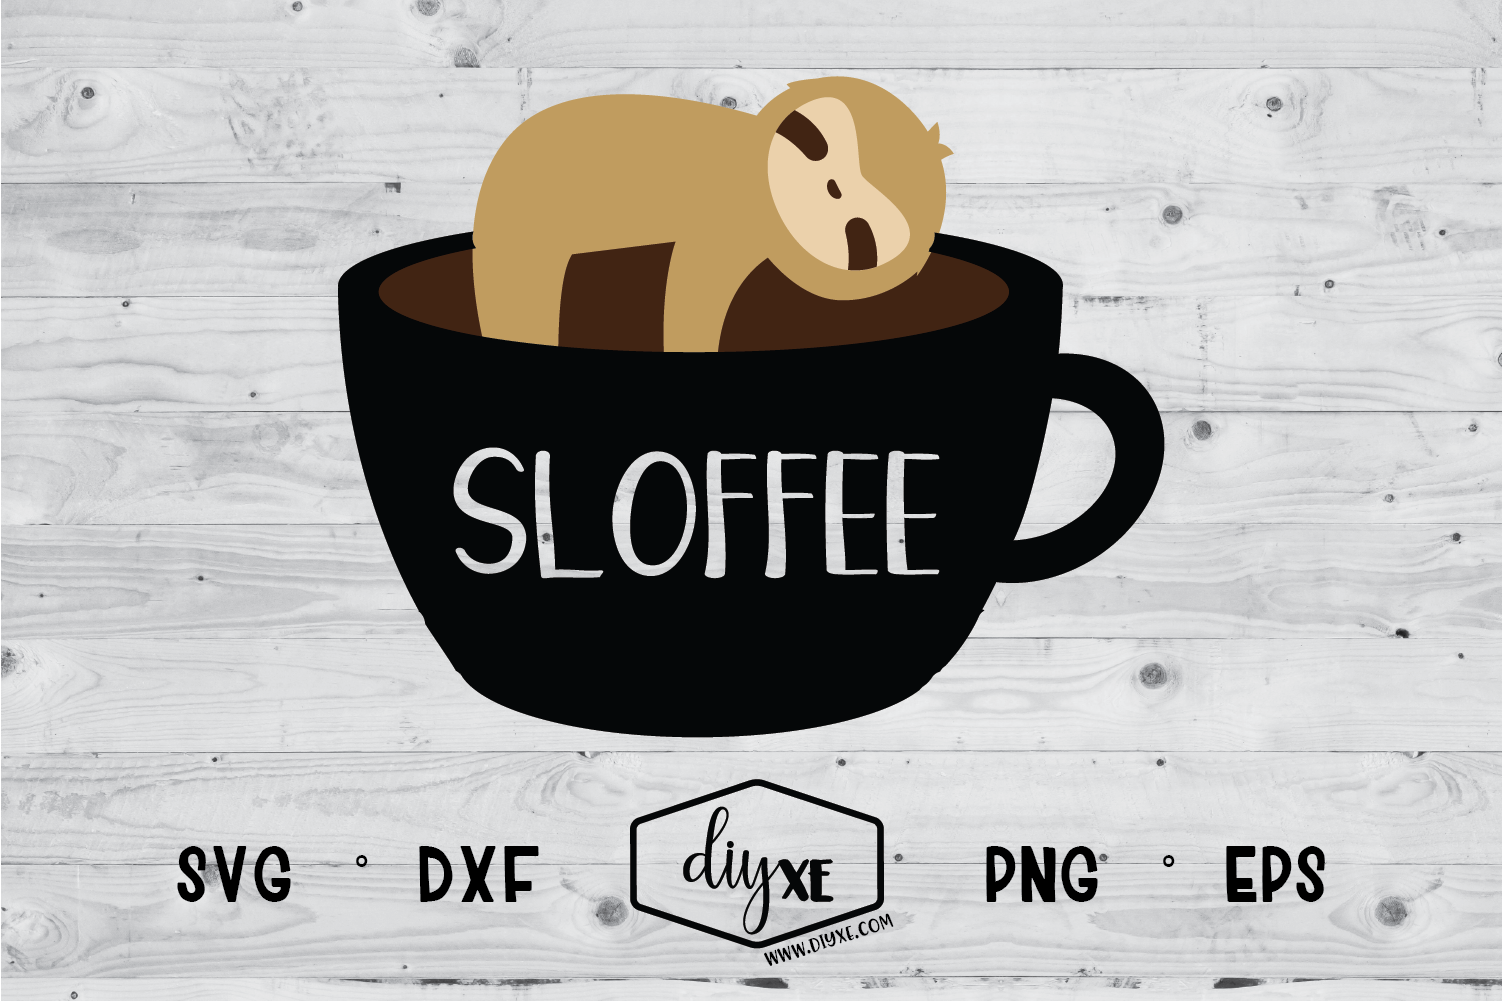 Download Free Sloffee Graphic By Sheryl Holst Creative Fabrica for Cricut Explore, Silhouette and other cutting machines.